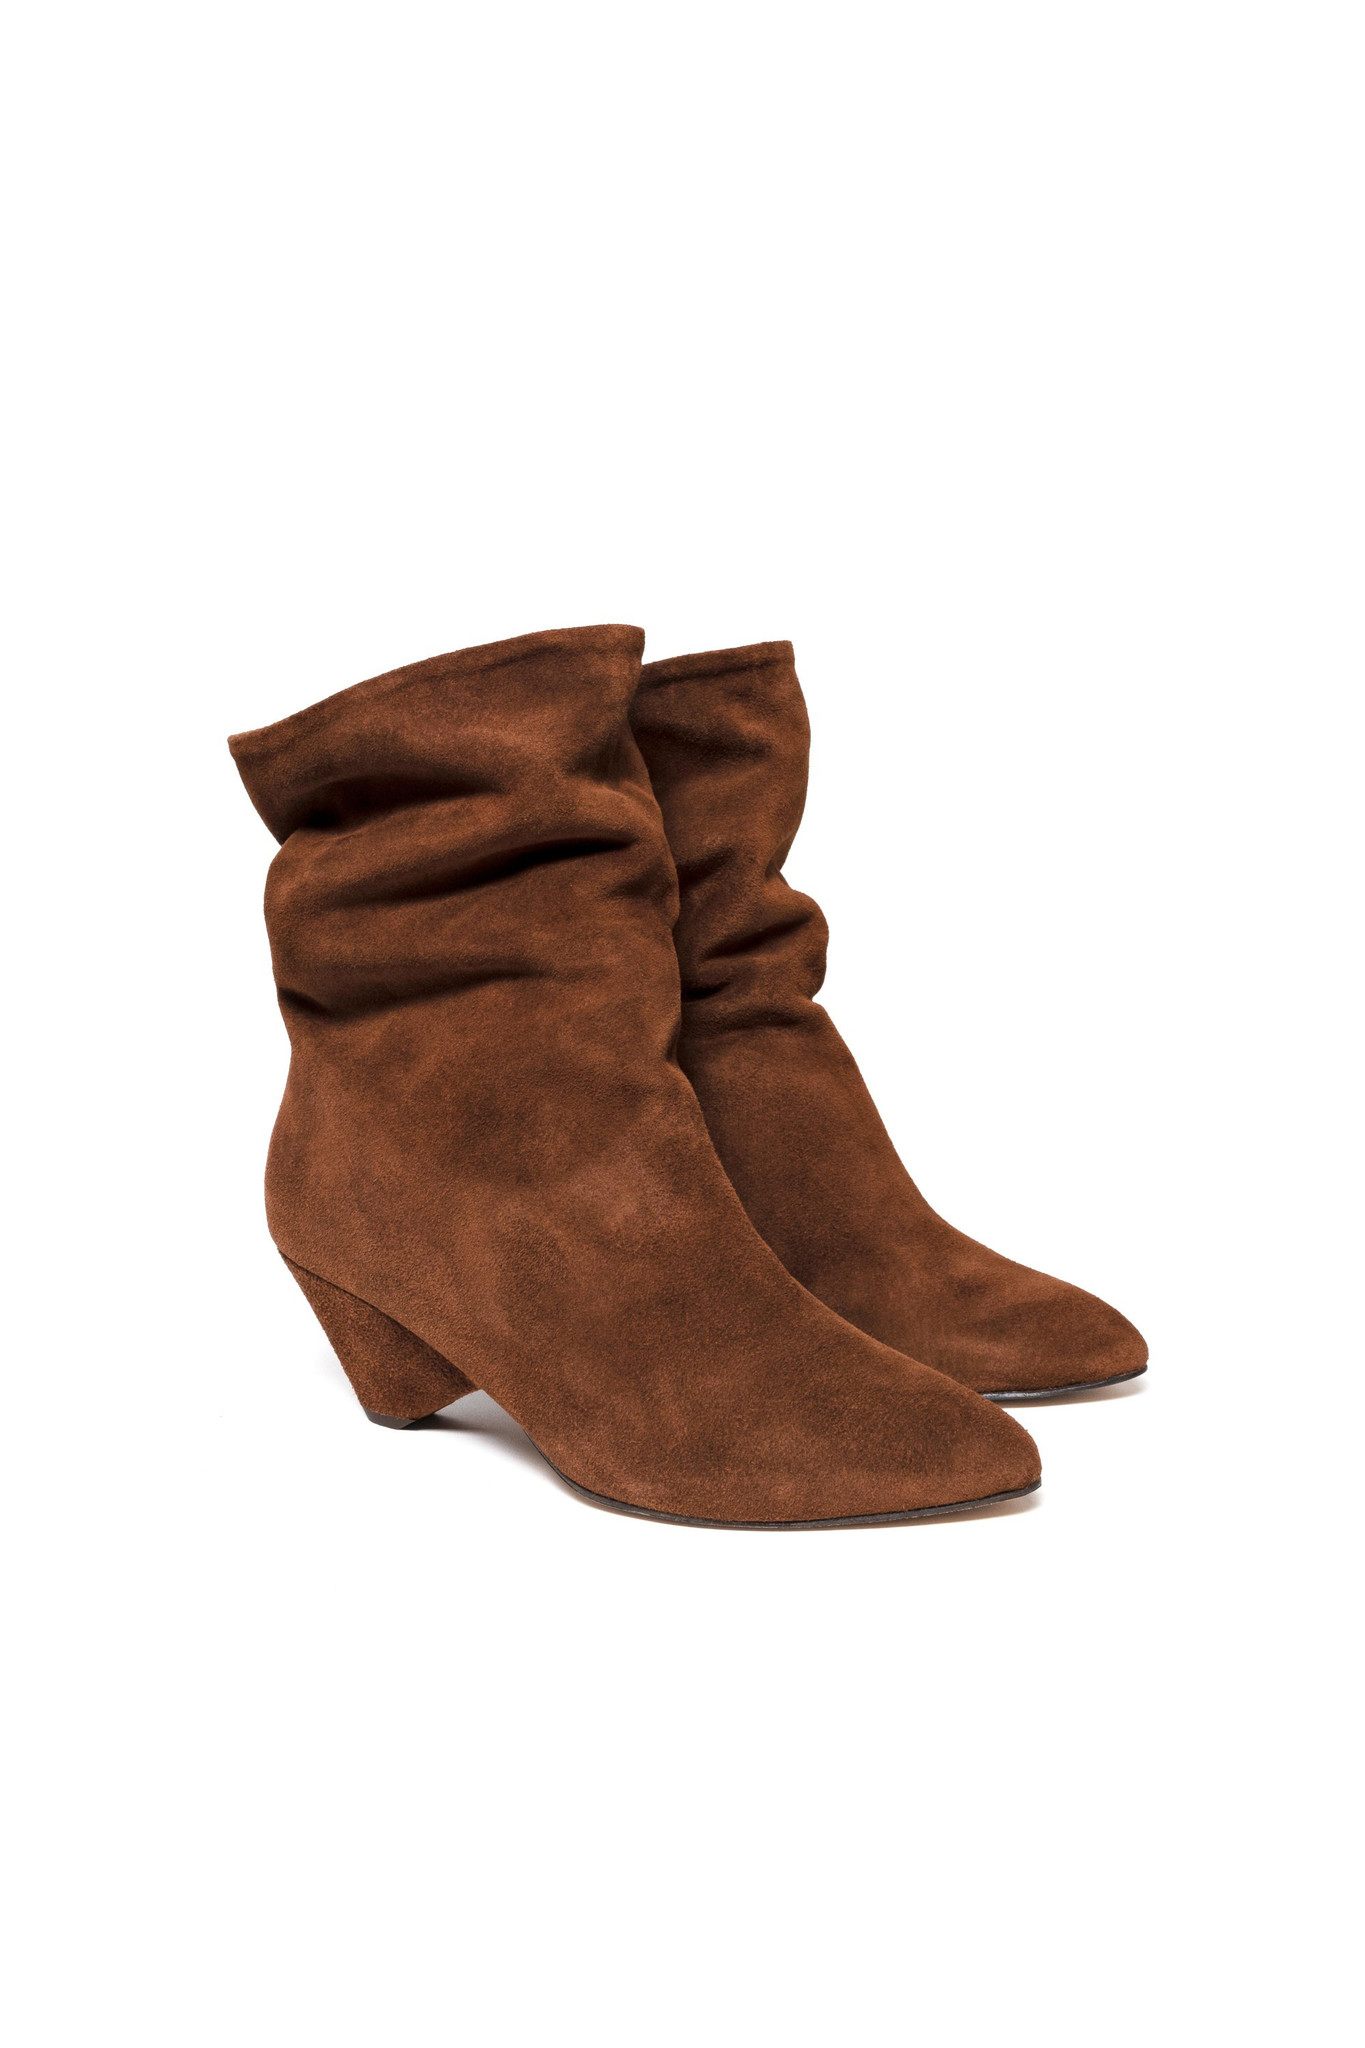 Vully 50 Triangle Calf Suede Boot - Chestnut-3